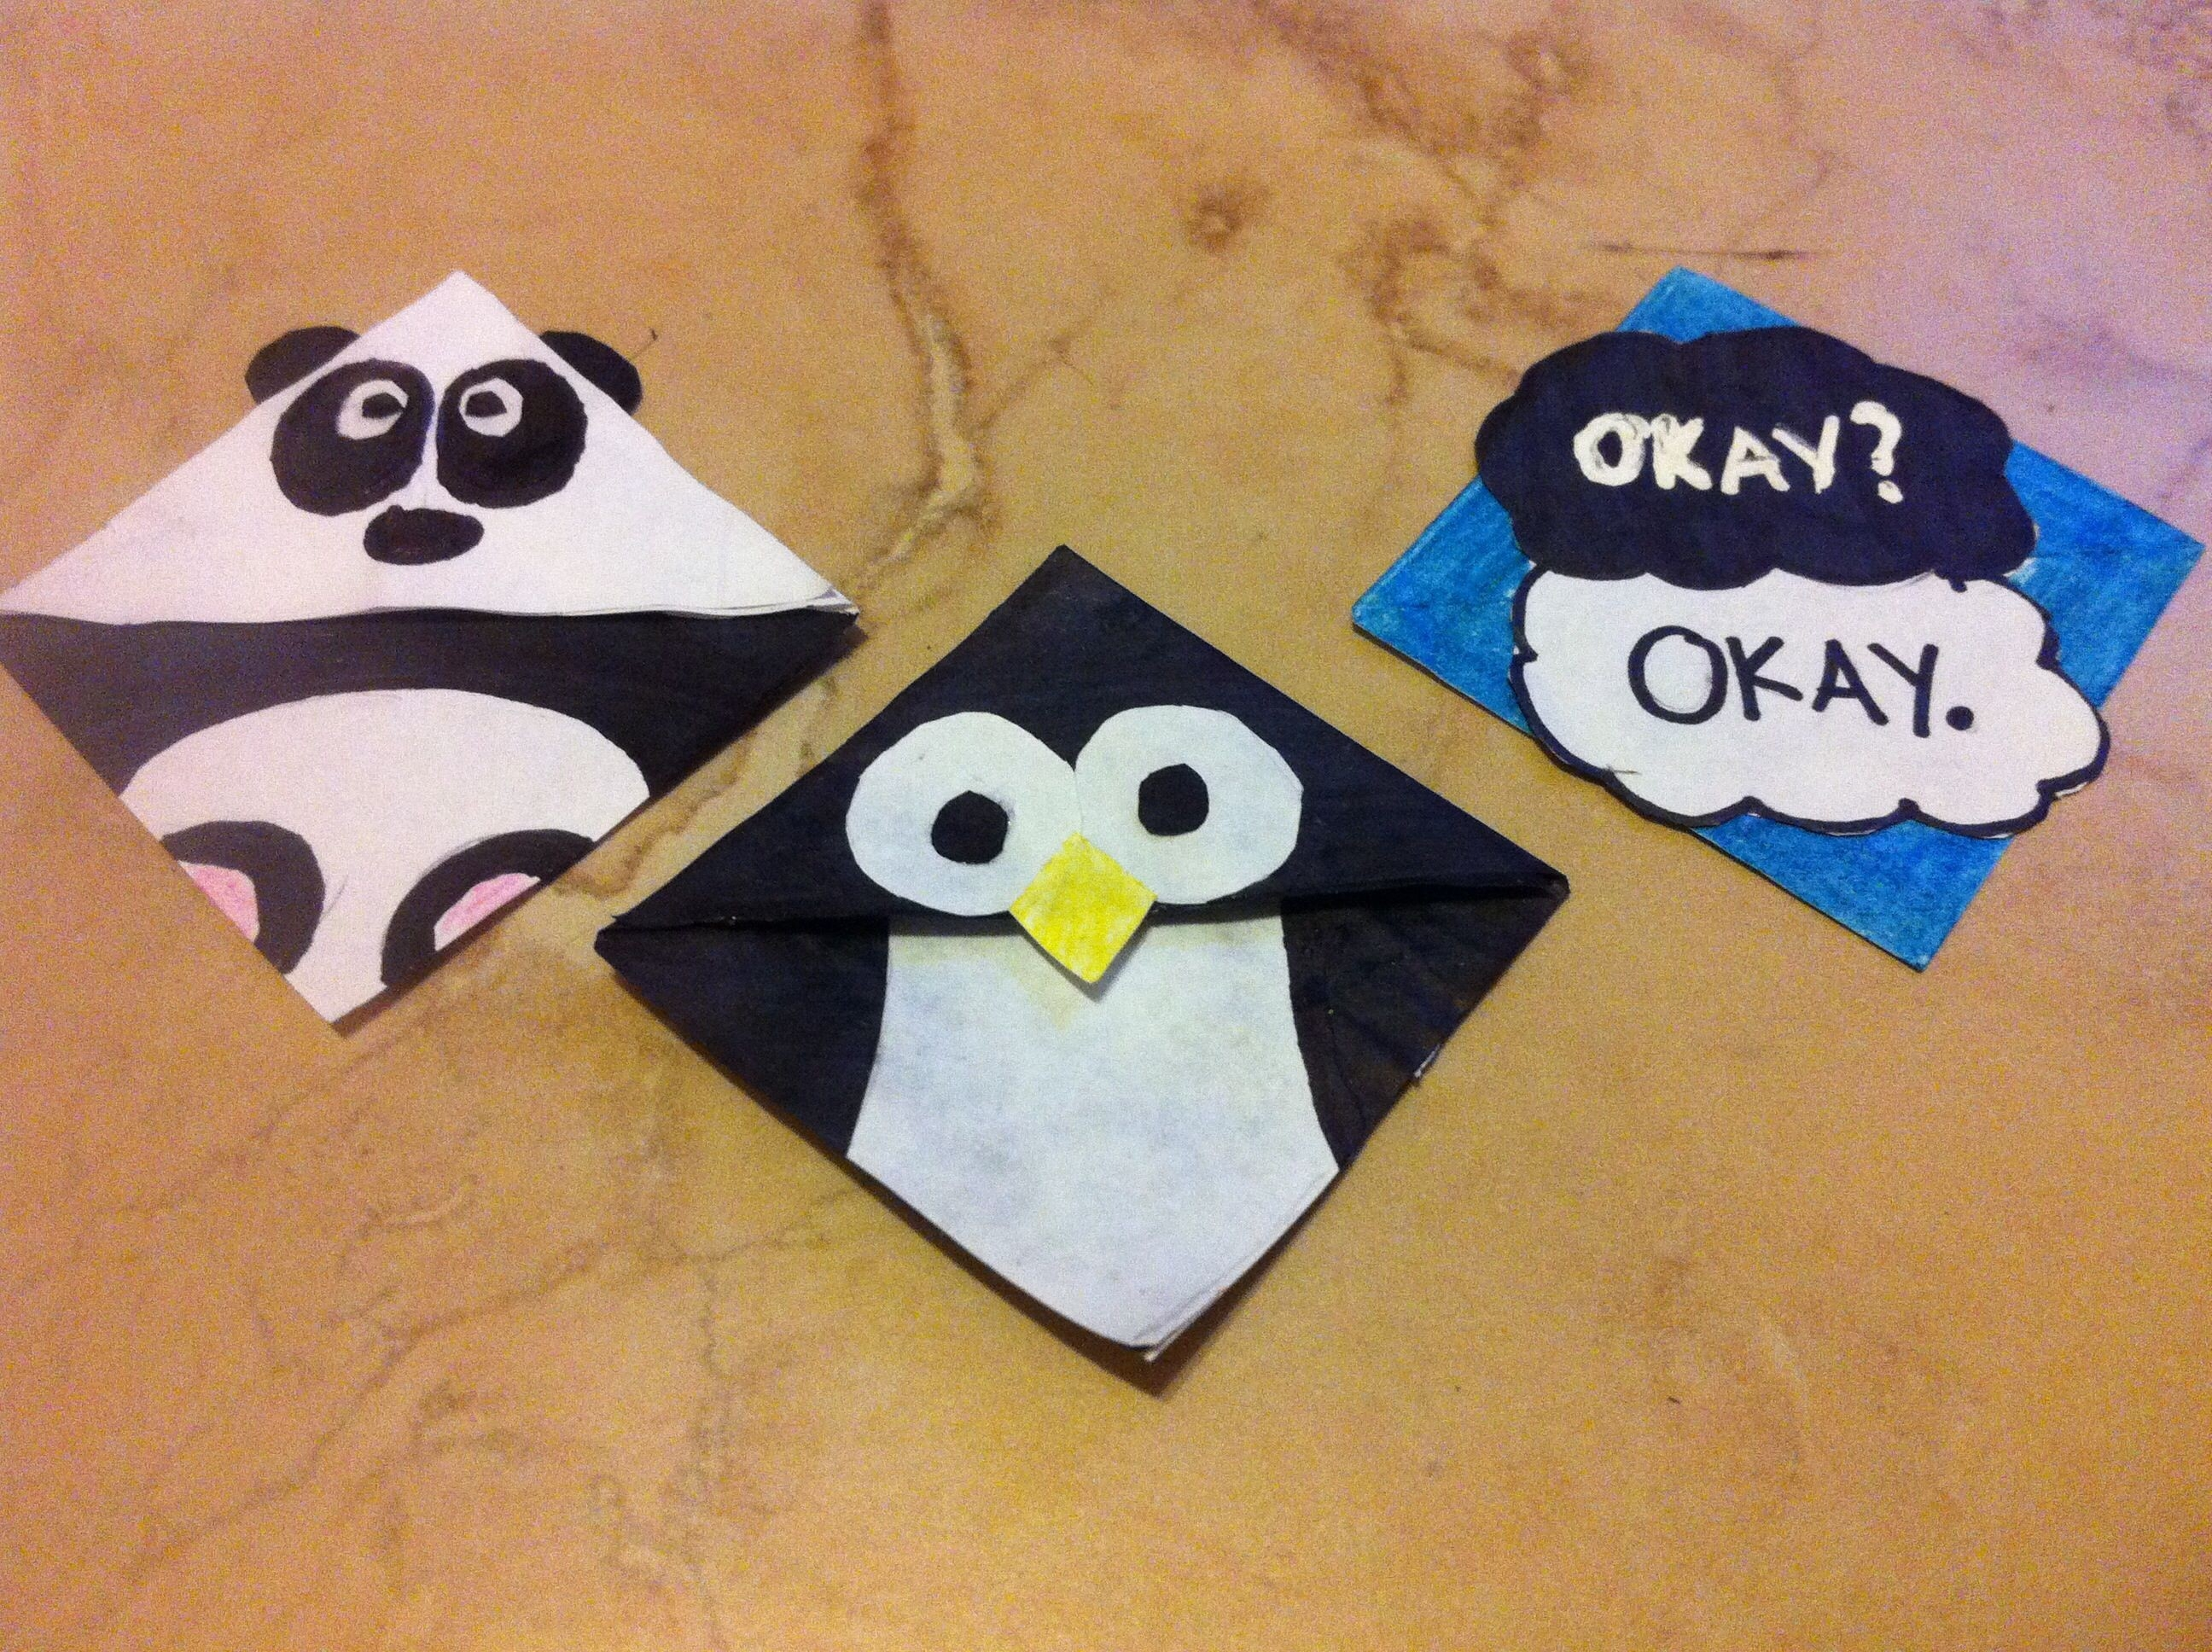 Diy Bookmarks | Monster Bookmarks ♥_♥ | Pinterest | Bookmarks regarding Diy Bookmarks Pinterest 29662